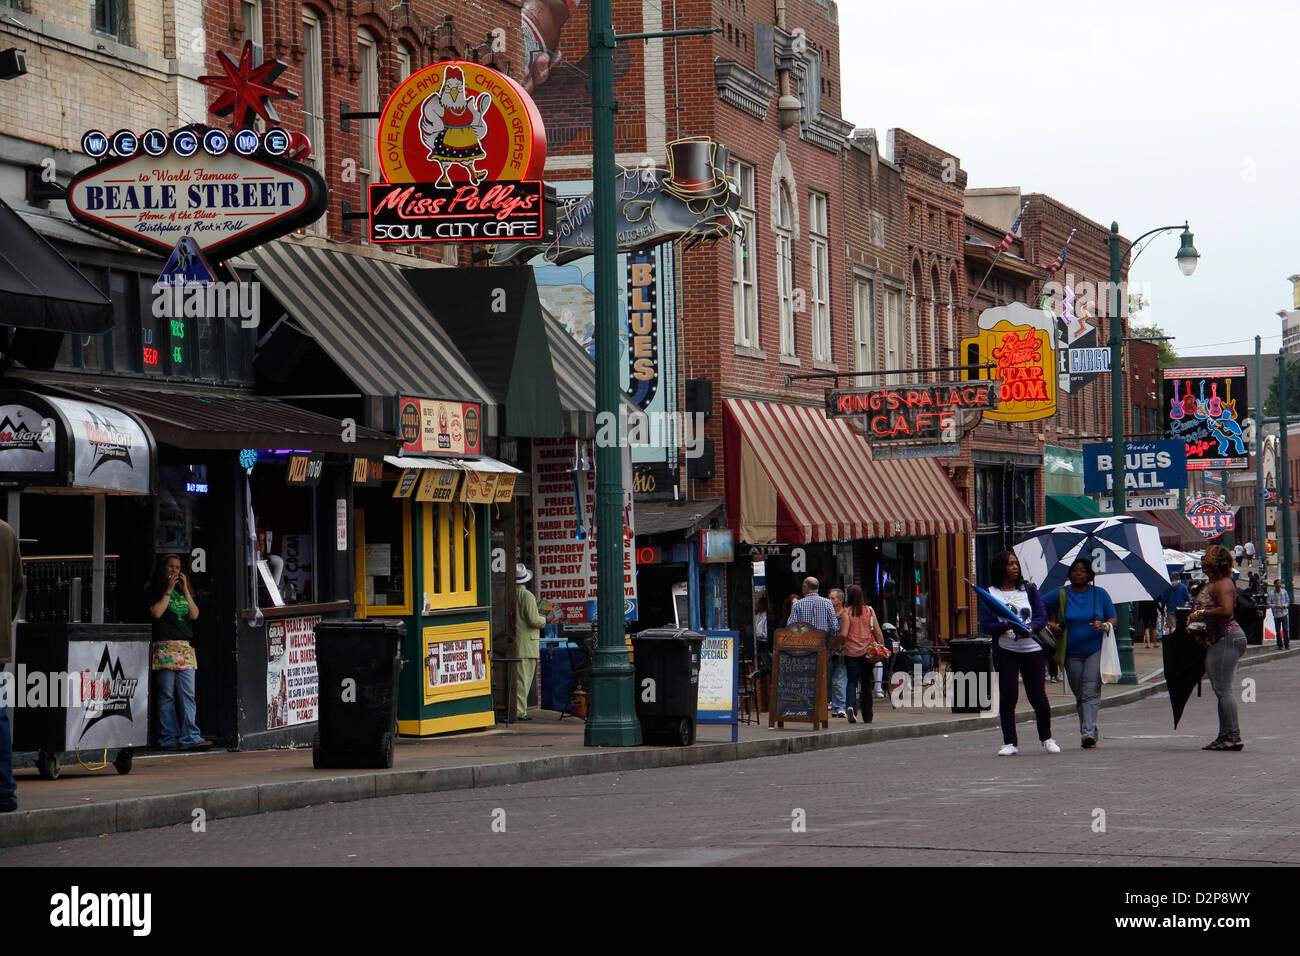 Beal street entertainment district downtown Memphis Tennessee - Stock Image